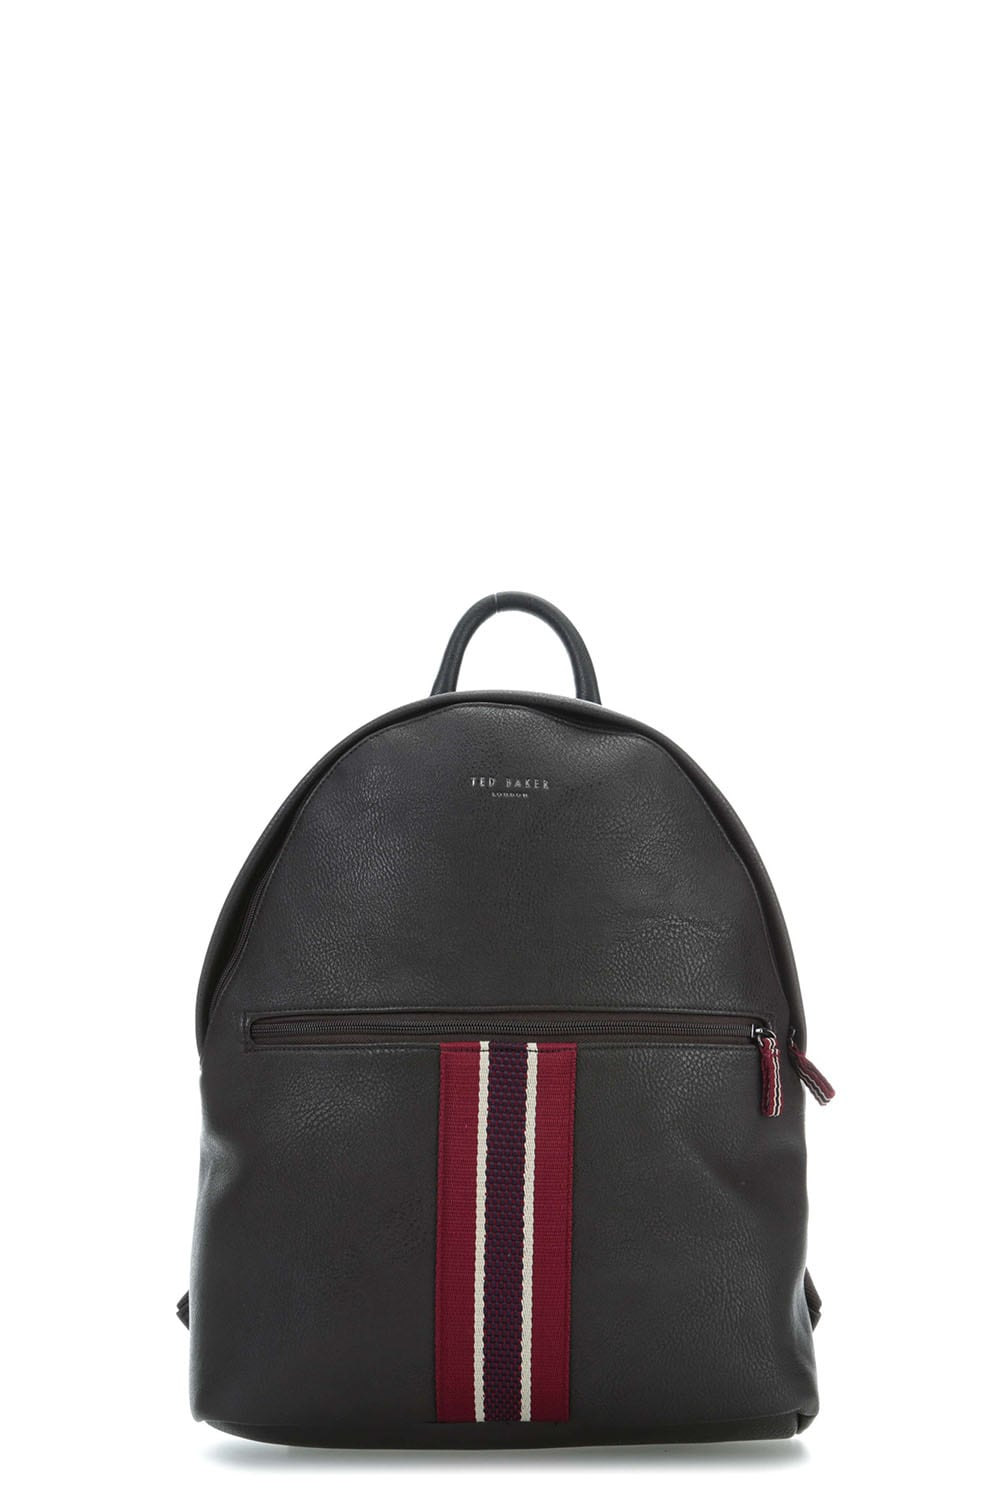 fe265a52c Backpack Ted Baker 015913. NEW